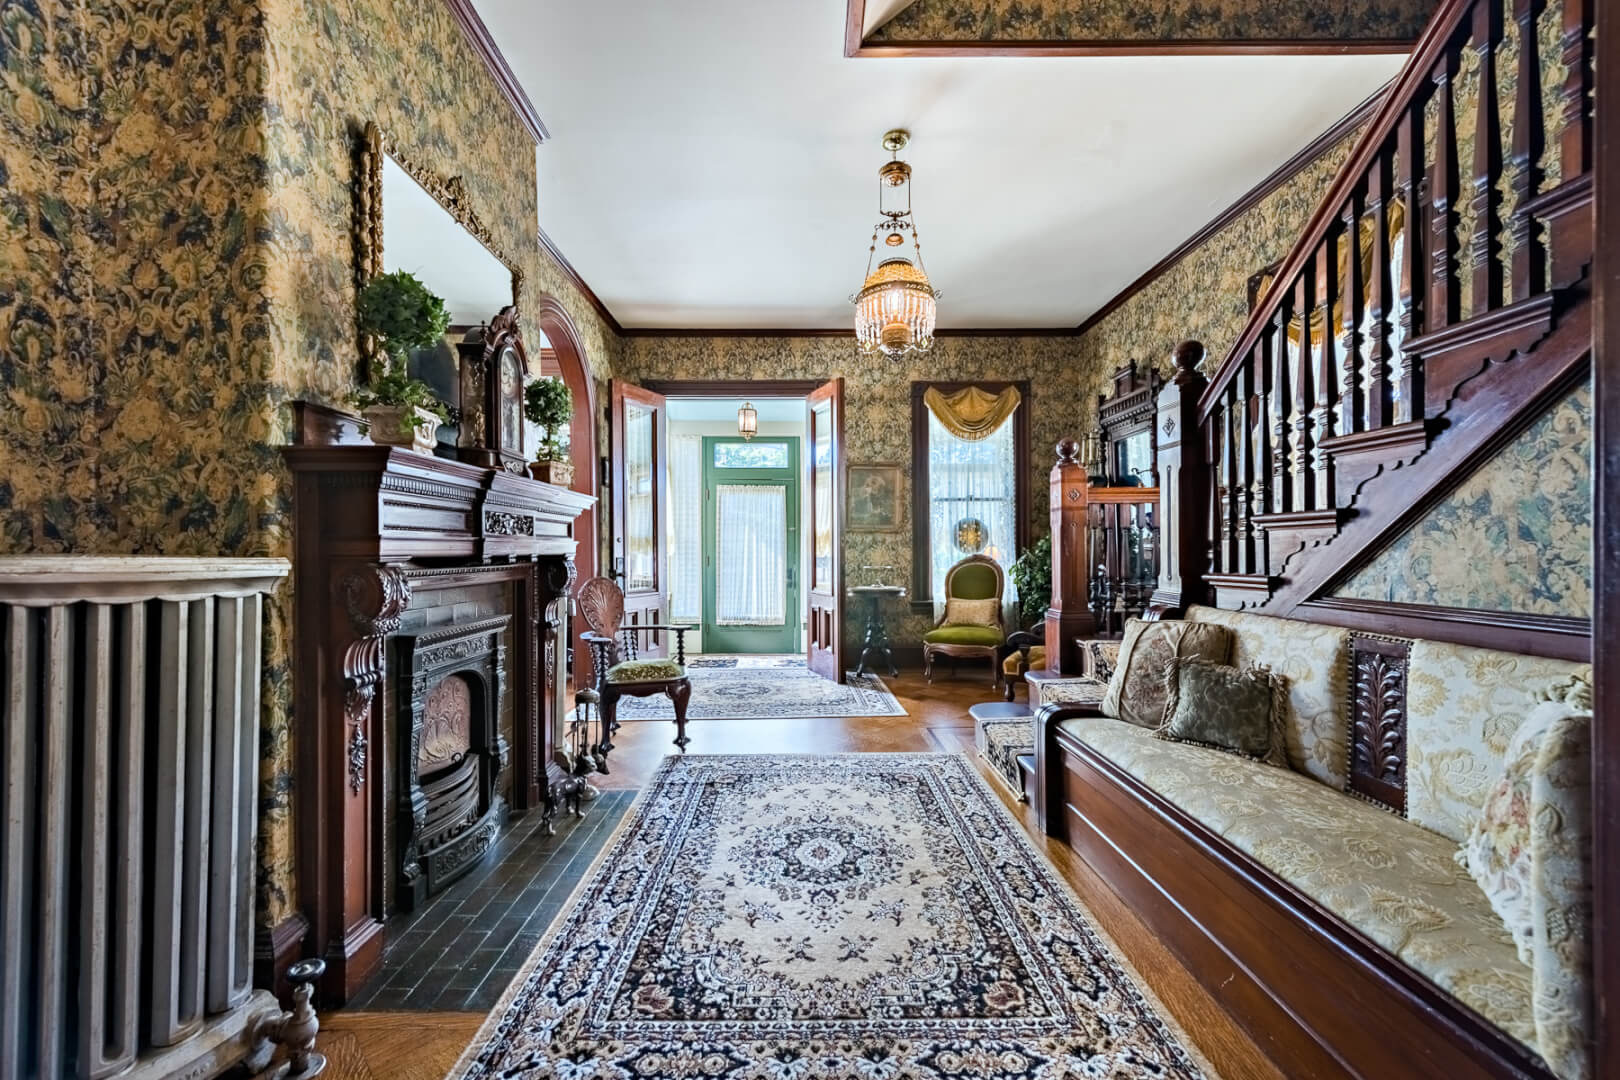 Lizzie borden 39 s maplecroft home for sale fully decorated for Pictures inside